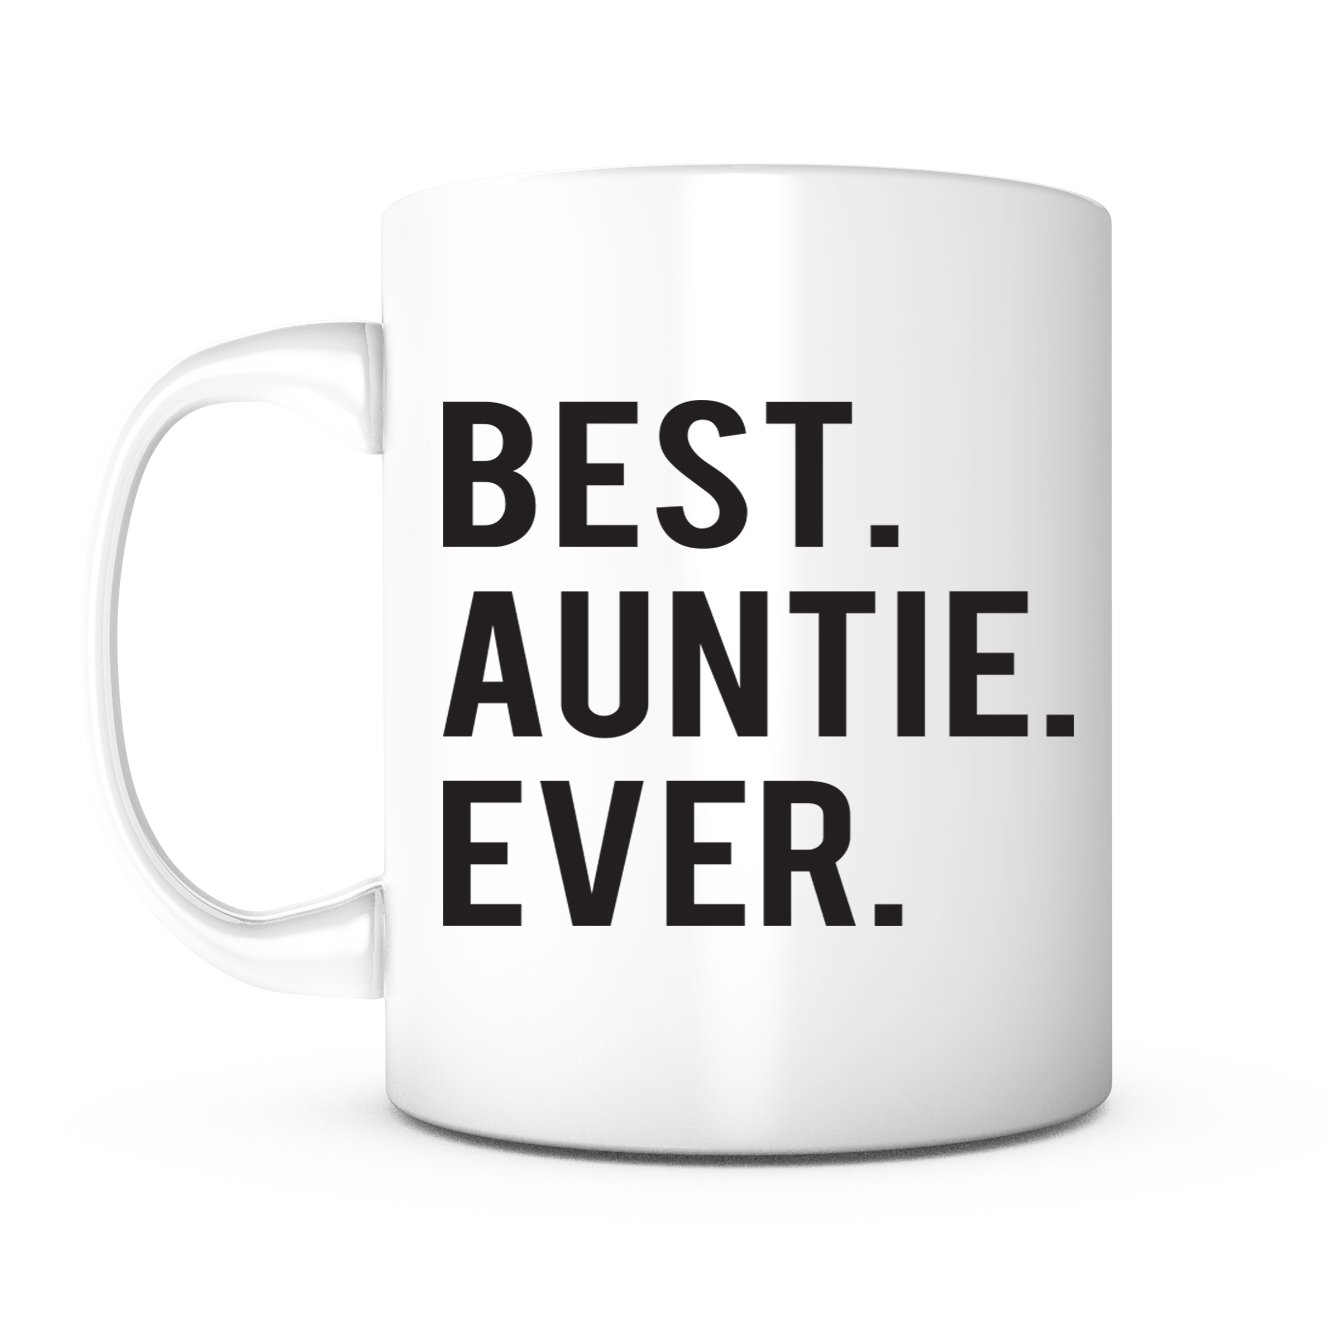 Best Auntie Ever Aunt EverGifts For AuntsAunt GiftPregnancy Reveal GiftGift SisterBest MugBest GiftsFamily PresentAunt Coffee